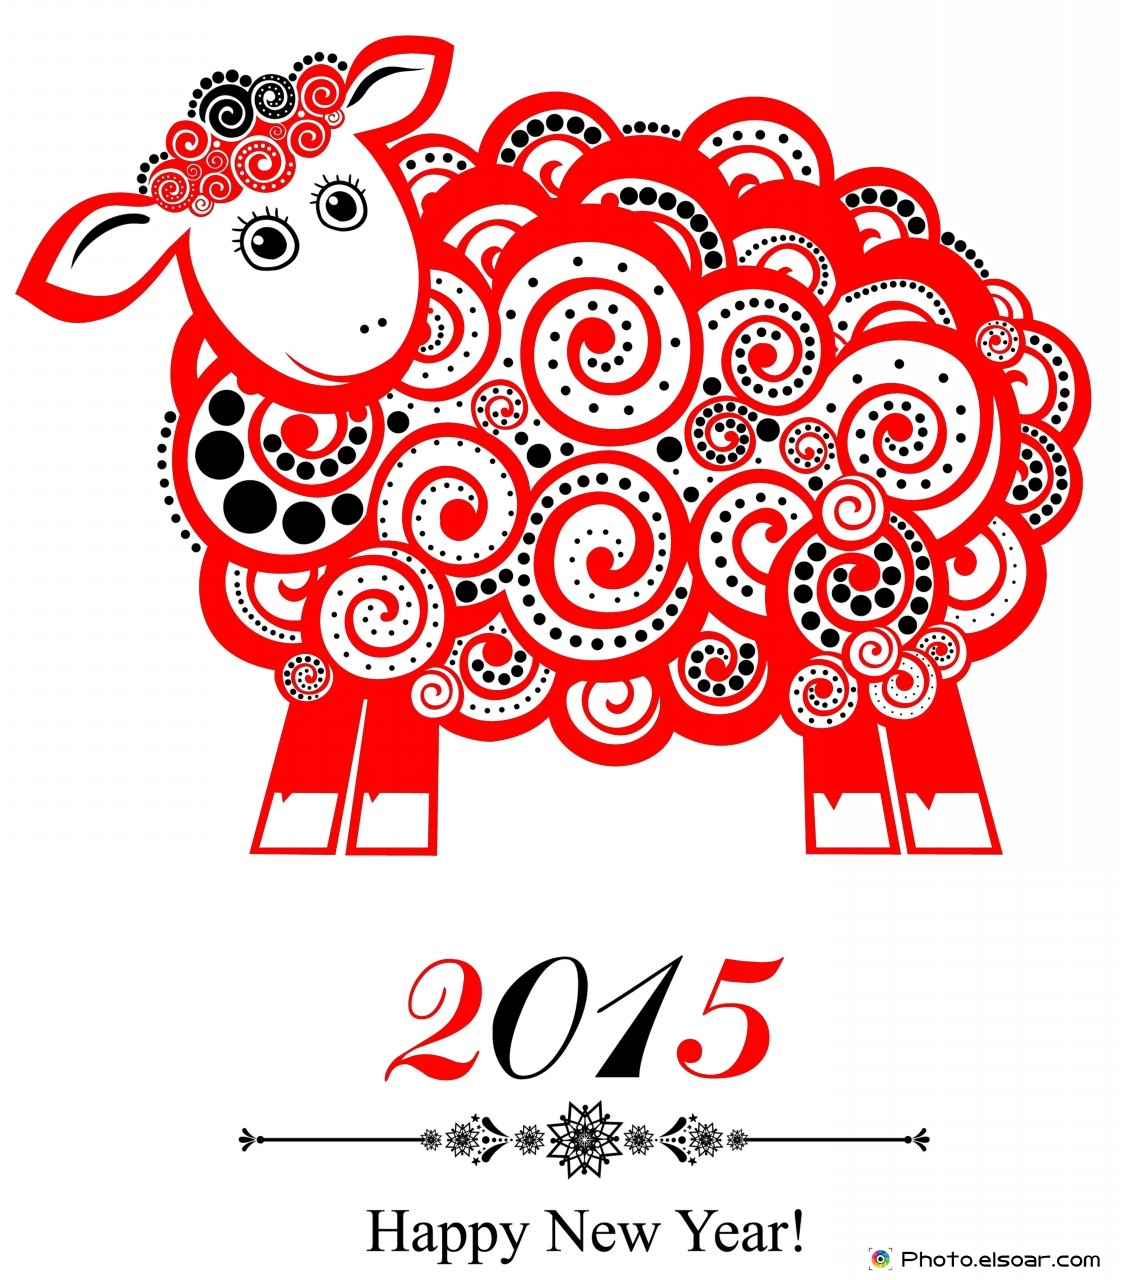 2015 year of the sheep with new designs